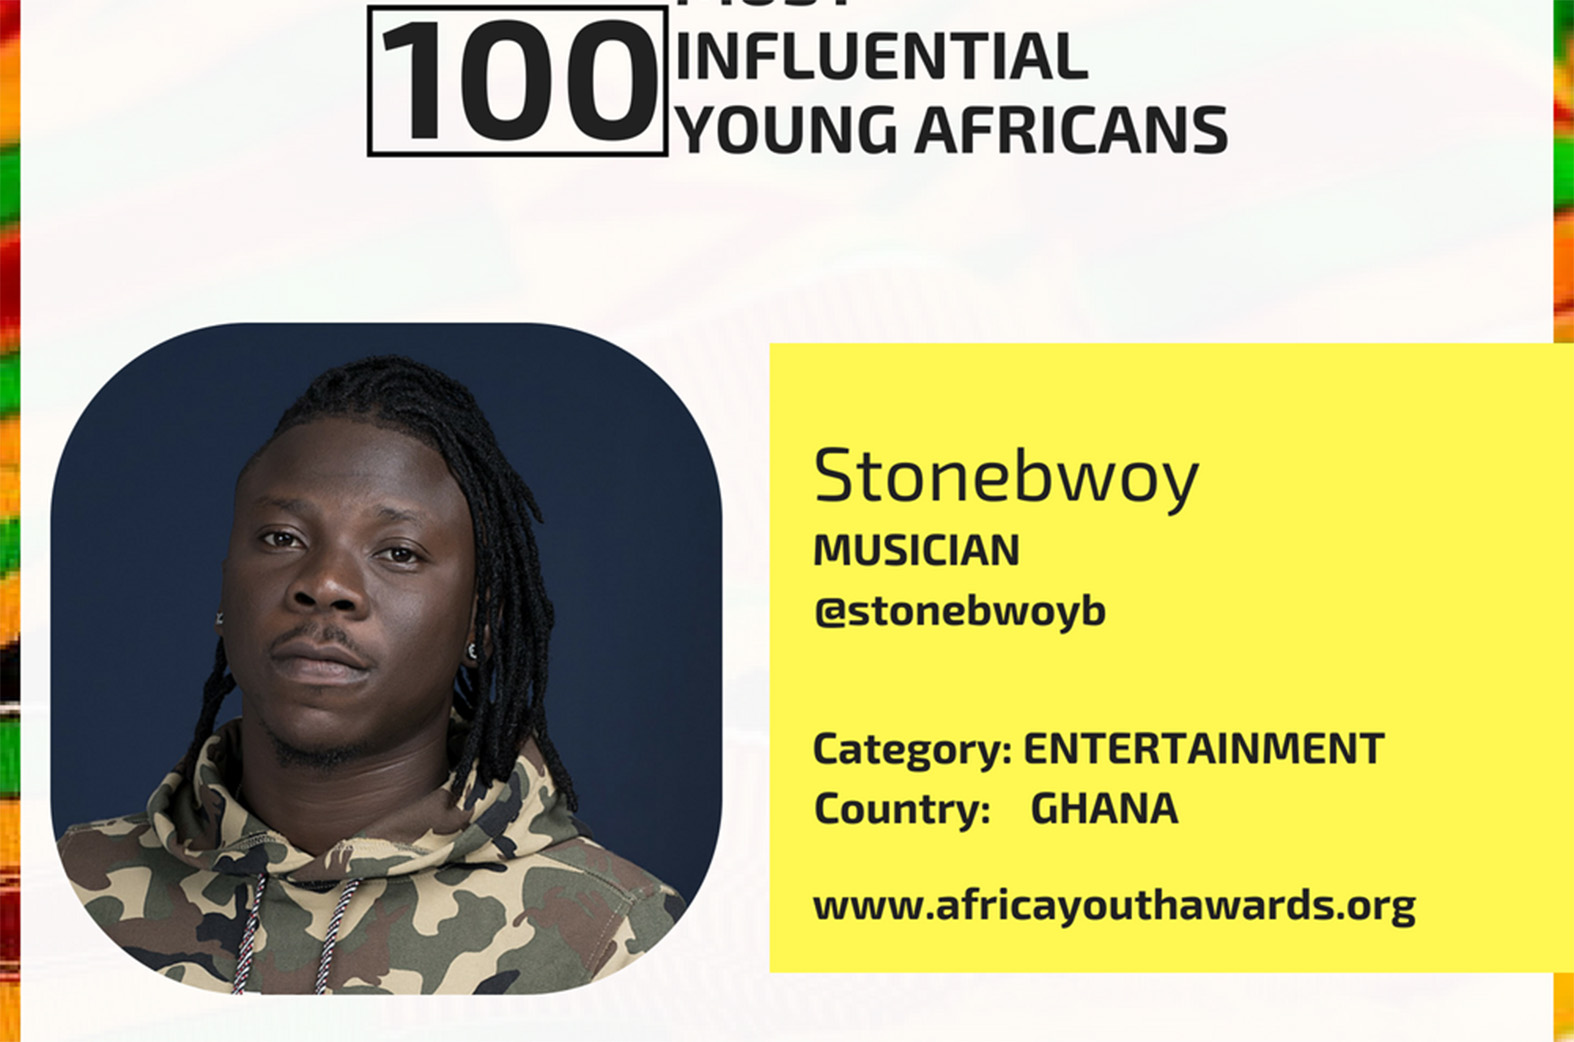 Stonebwoy makes list of 100 Most Influential Young Africans for 2018